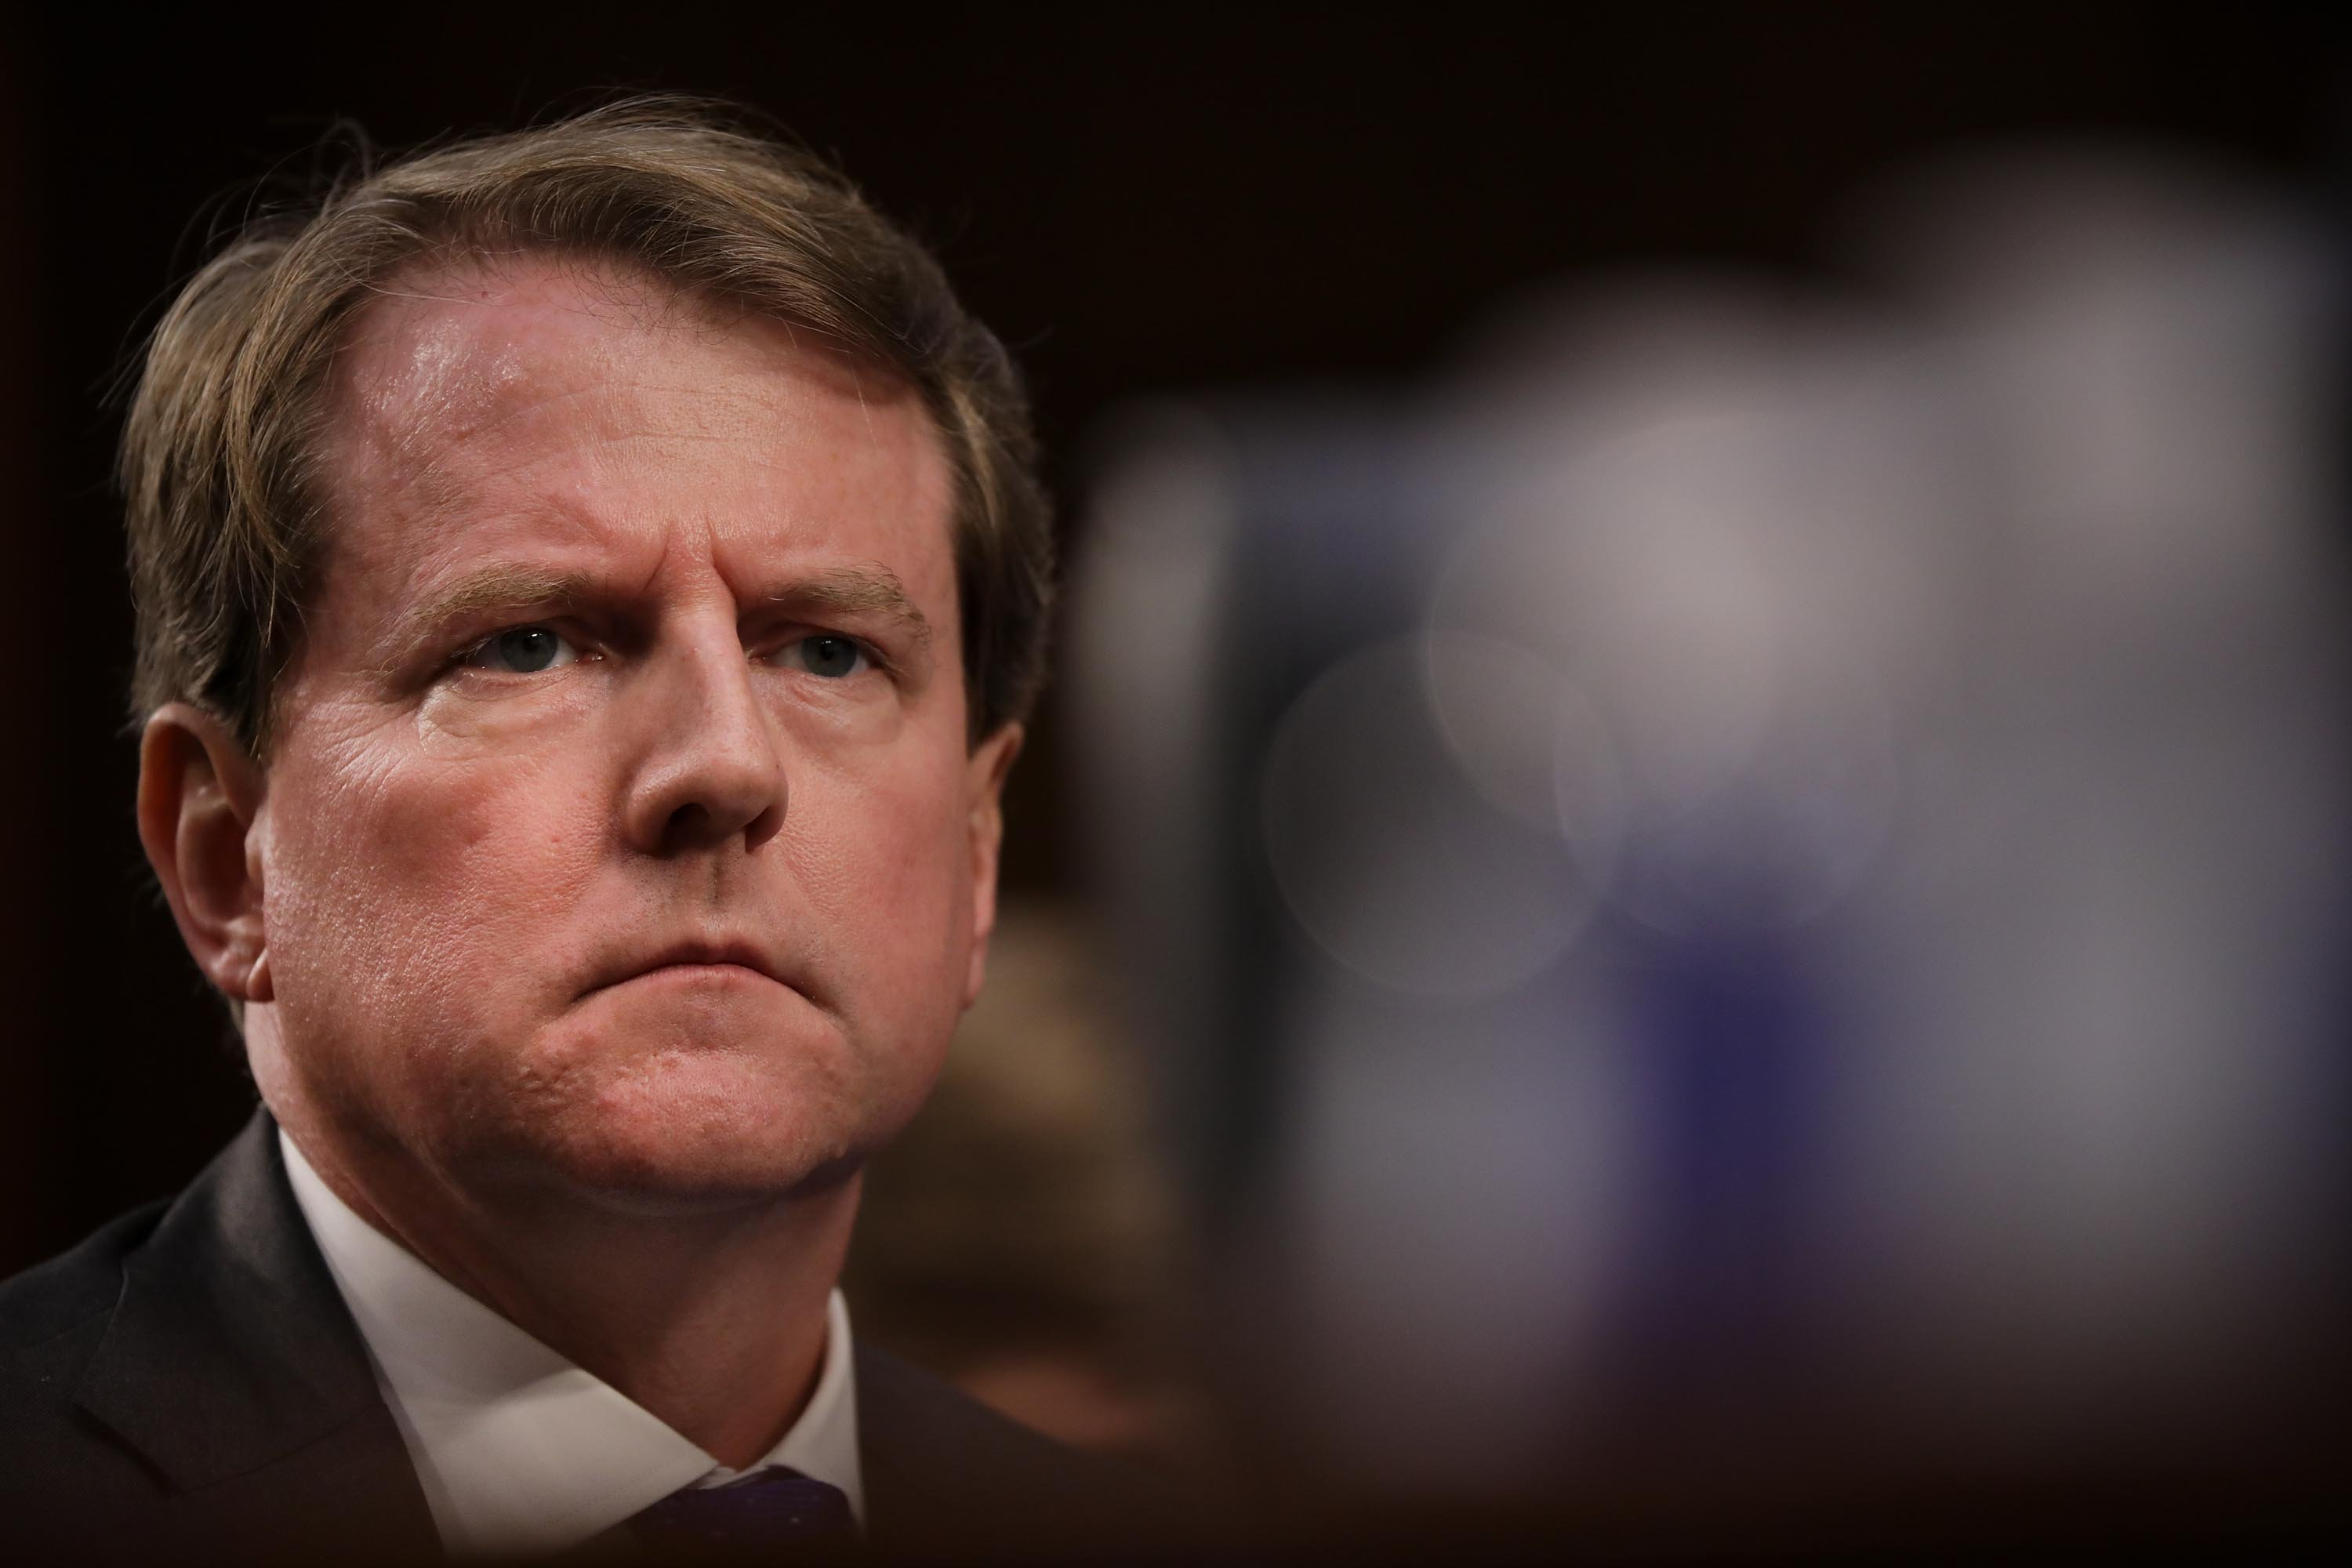 READ: Appeals court ruling on Don McGahn subpoena